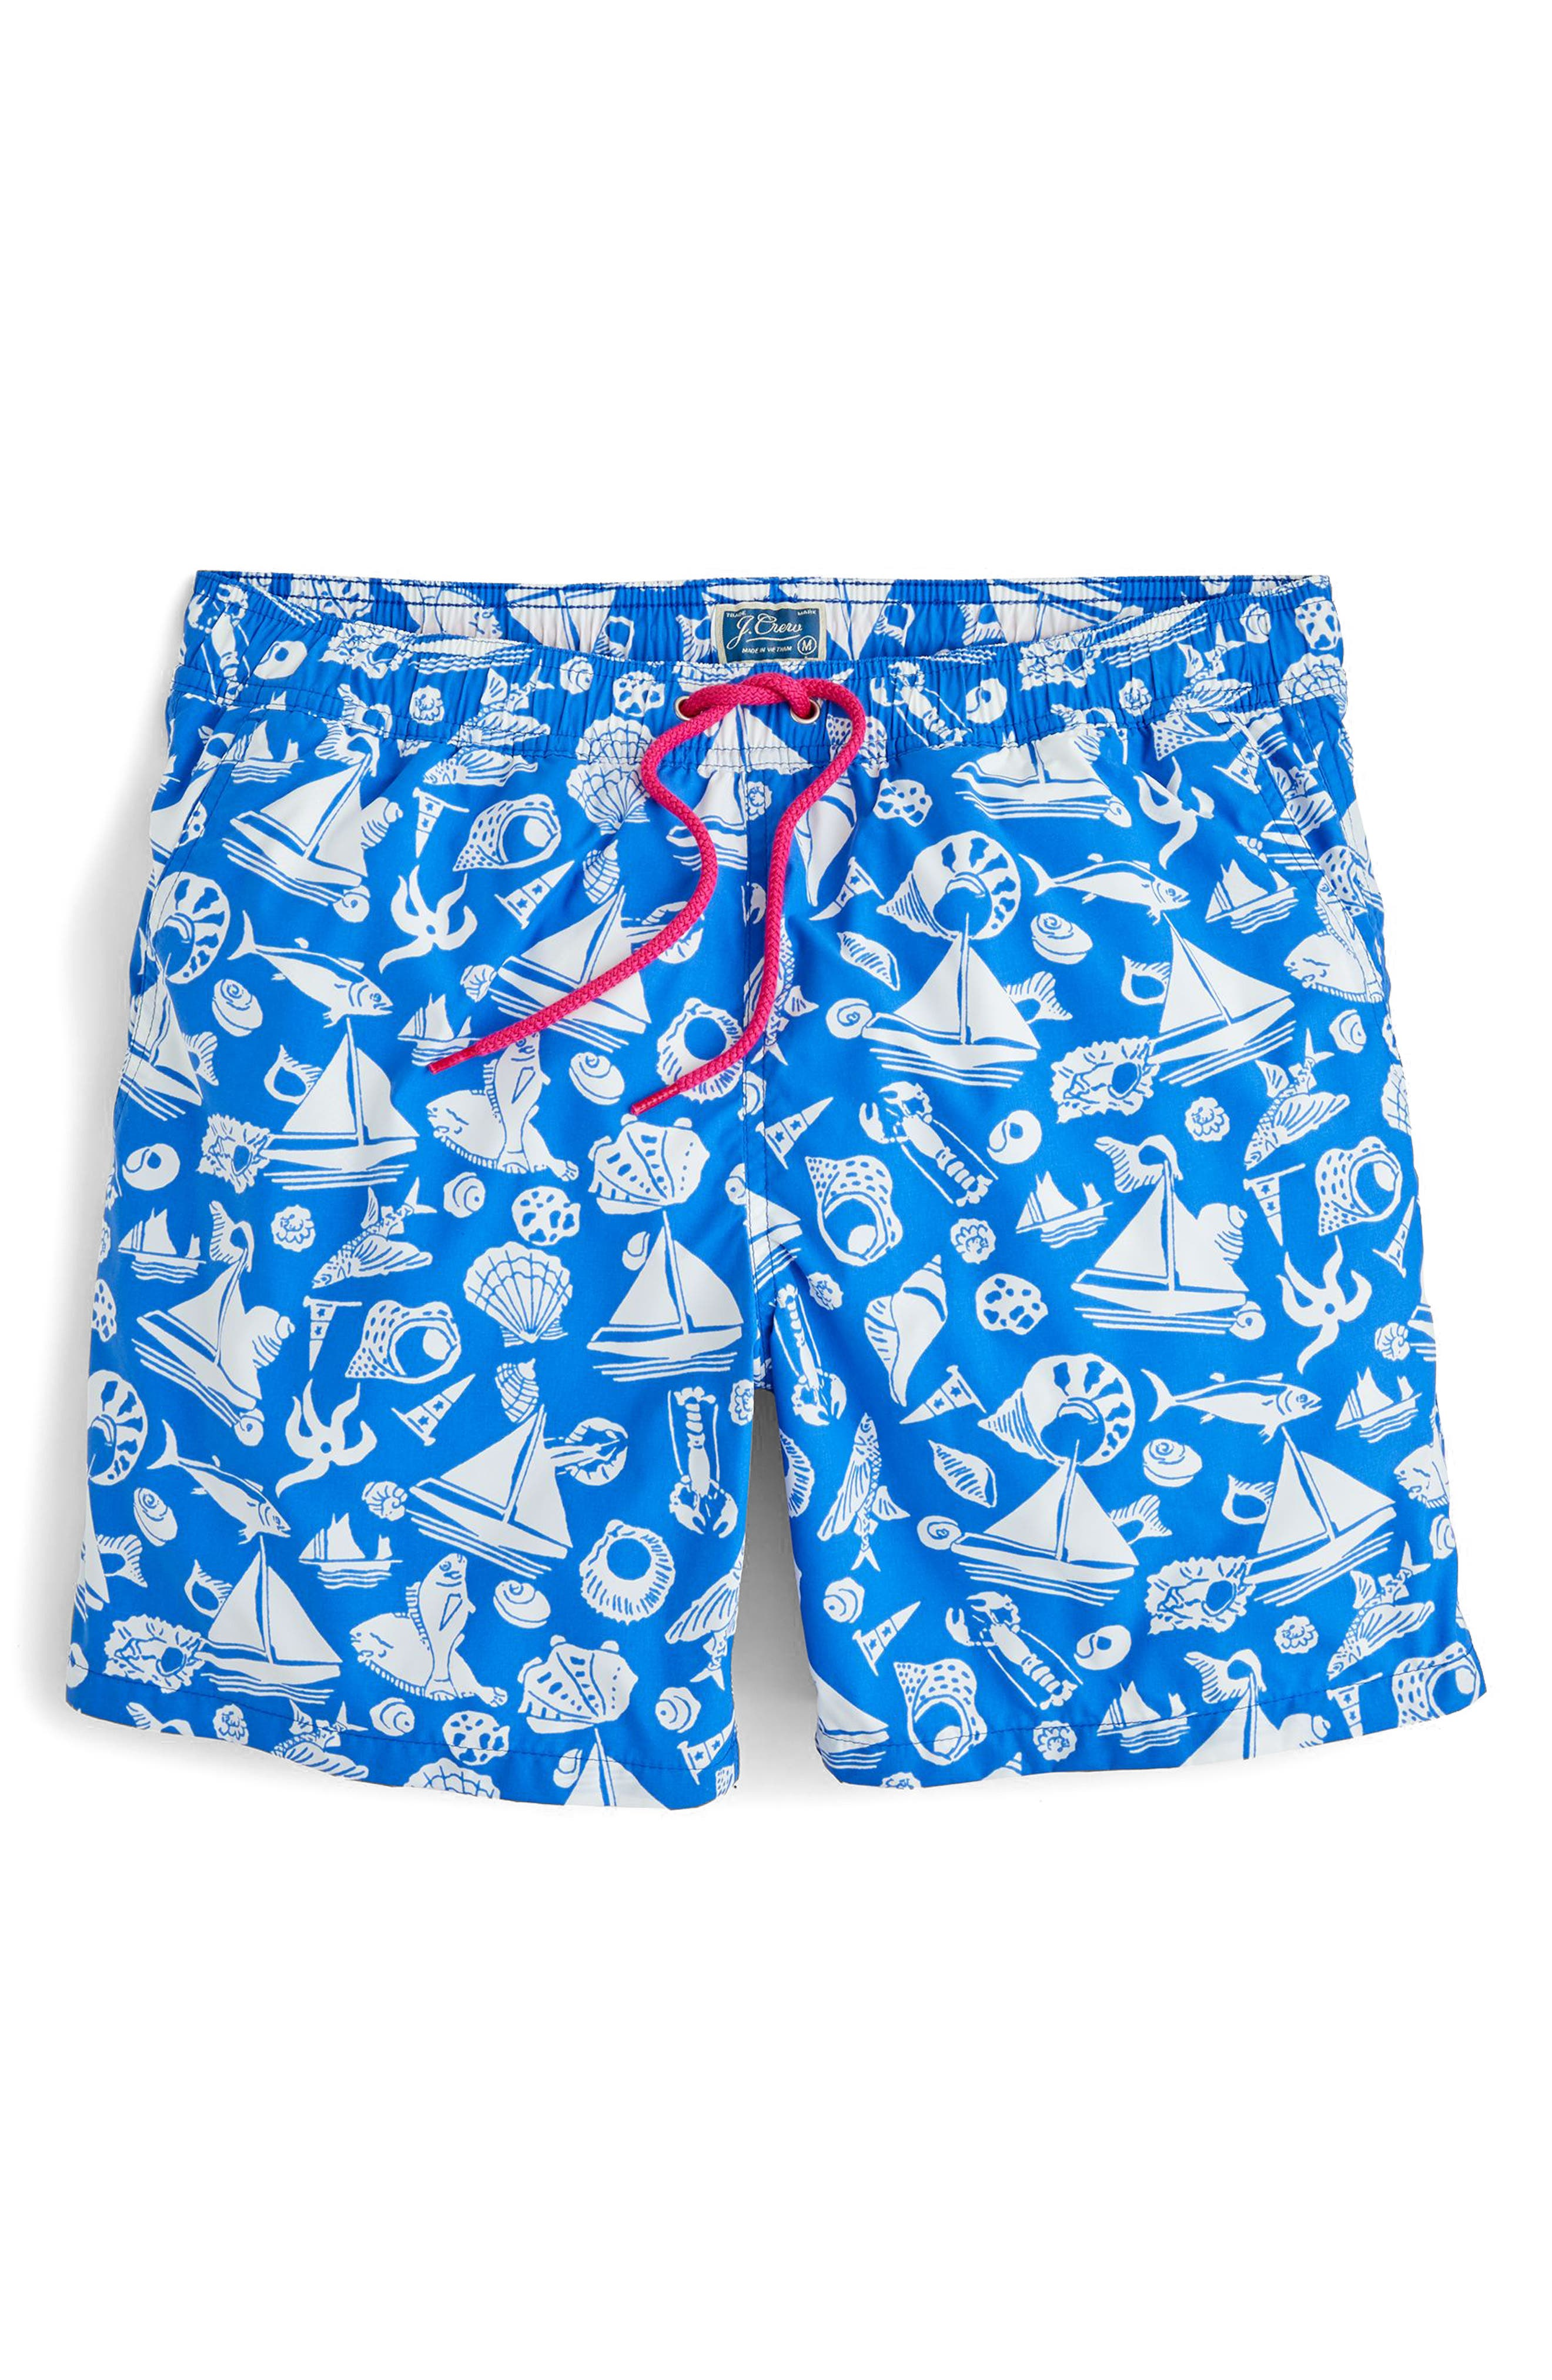 J.Crew Seaside Print Swim Trunks